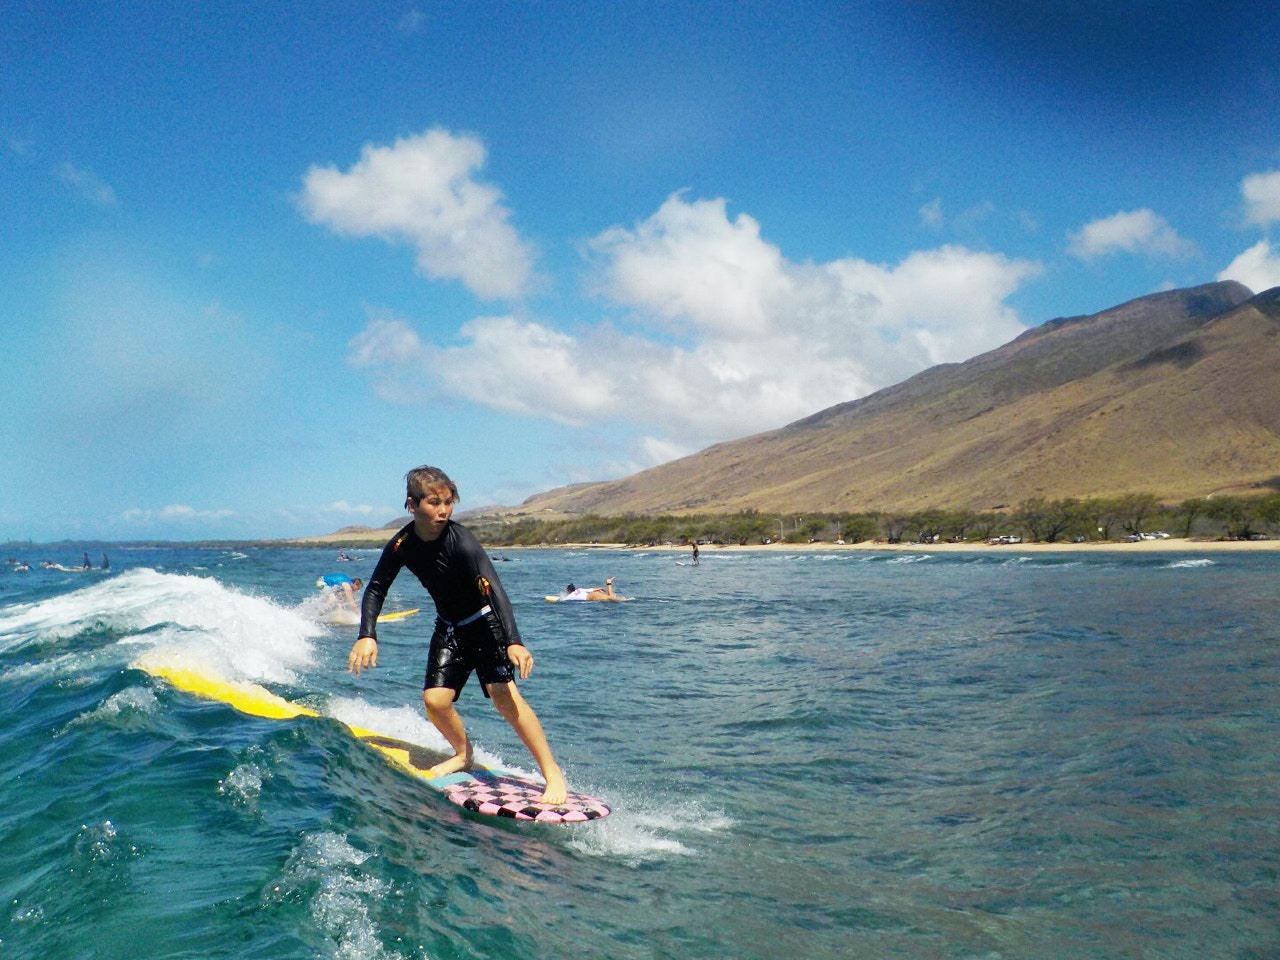 Get surf lessons from pro surfer Zack Howard at his Maui surf school.